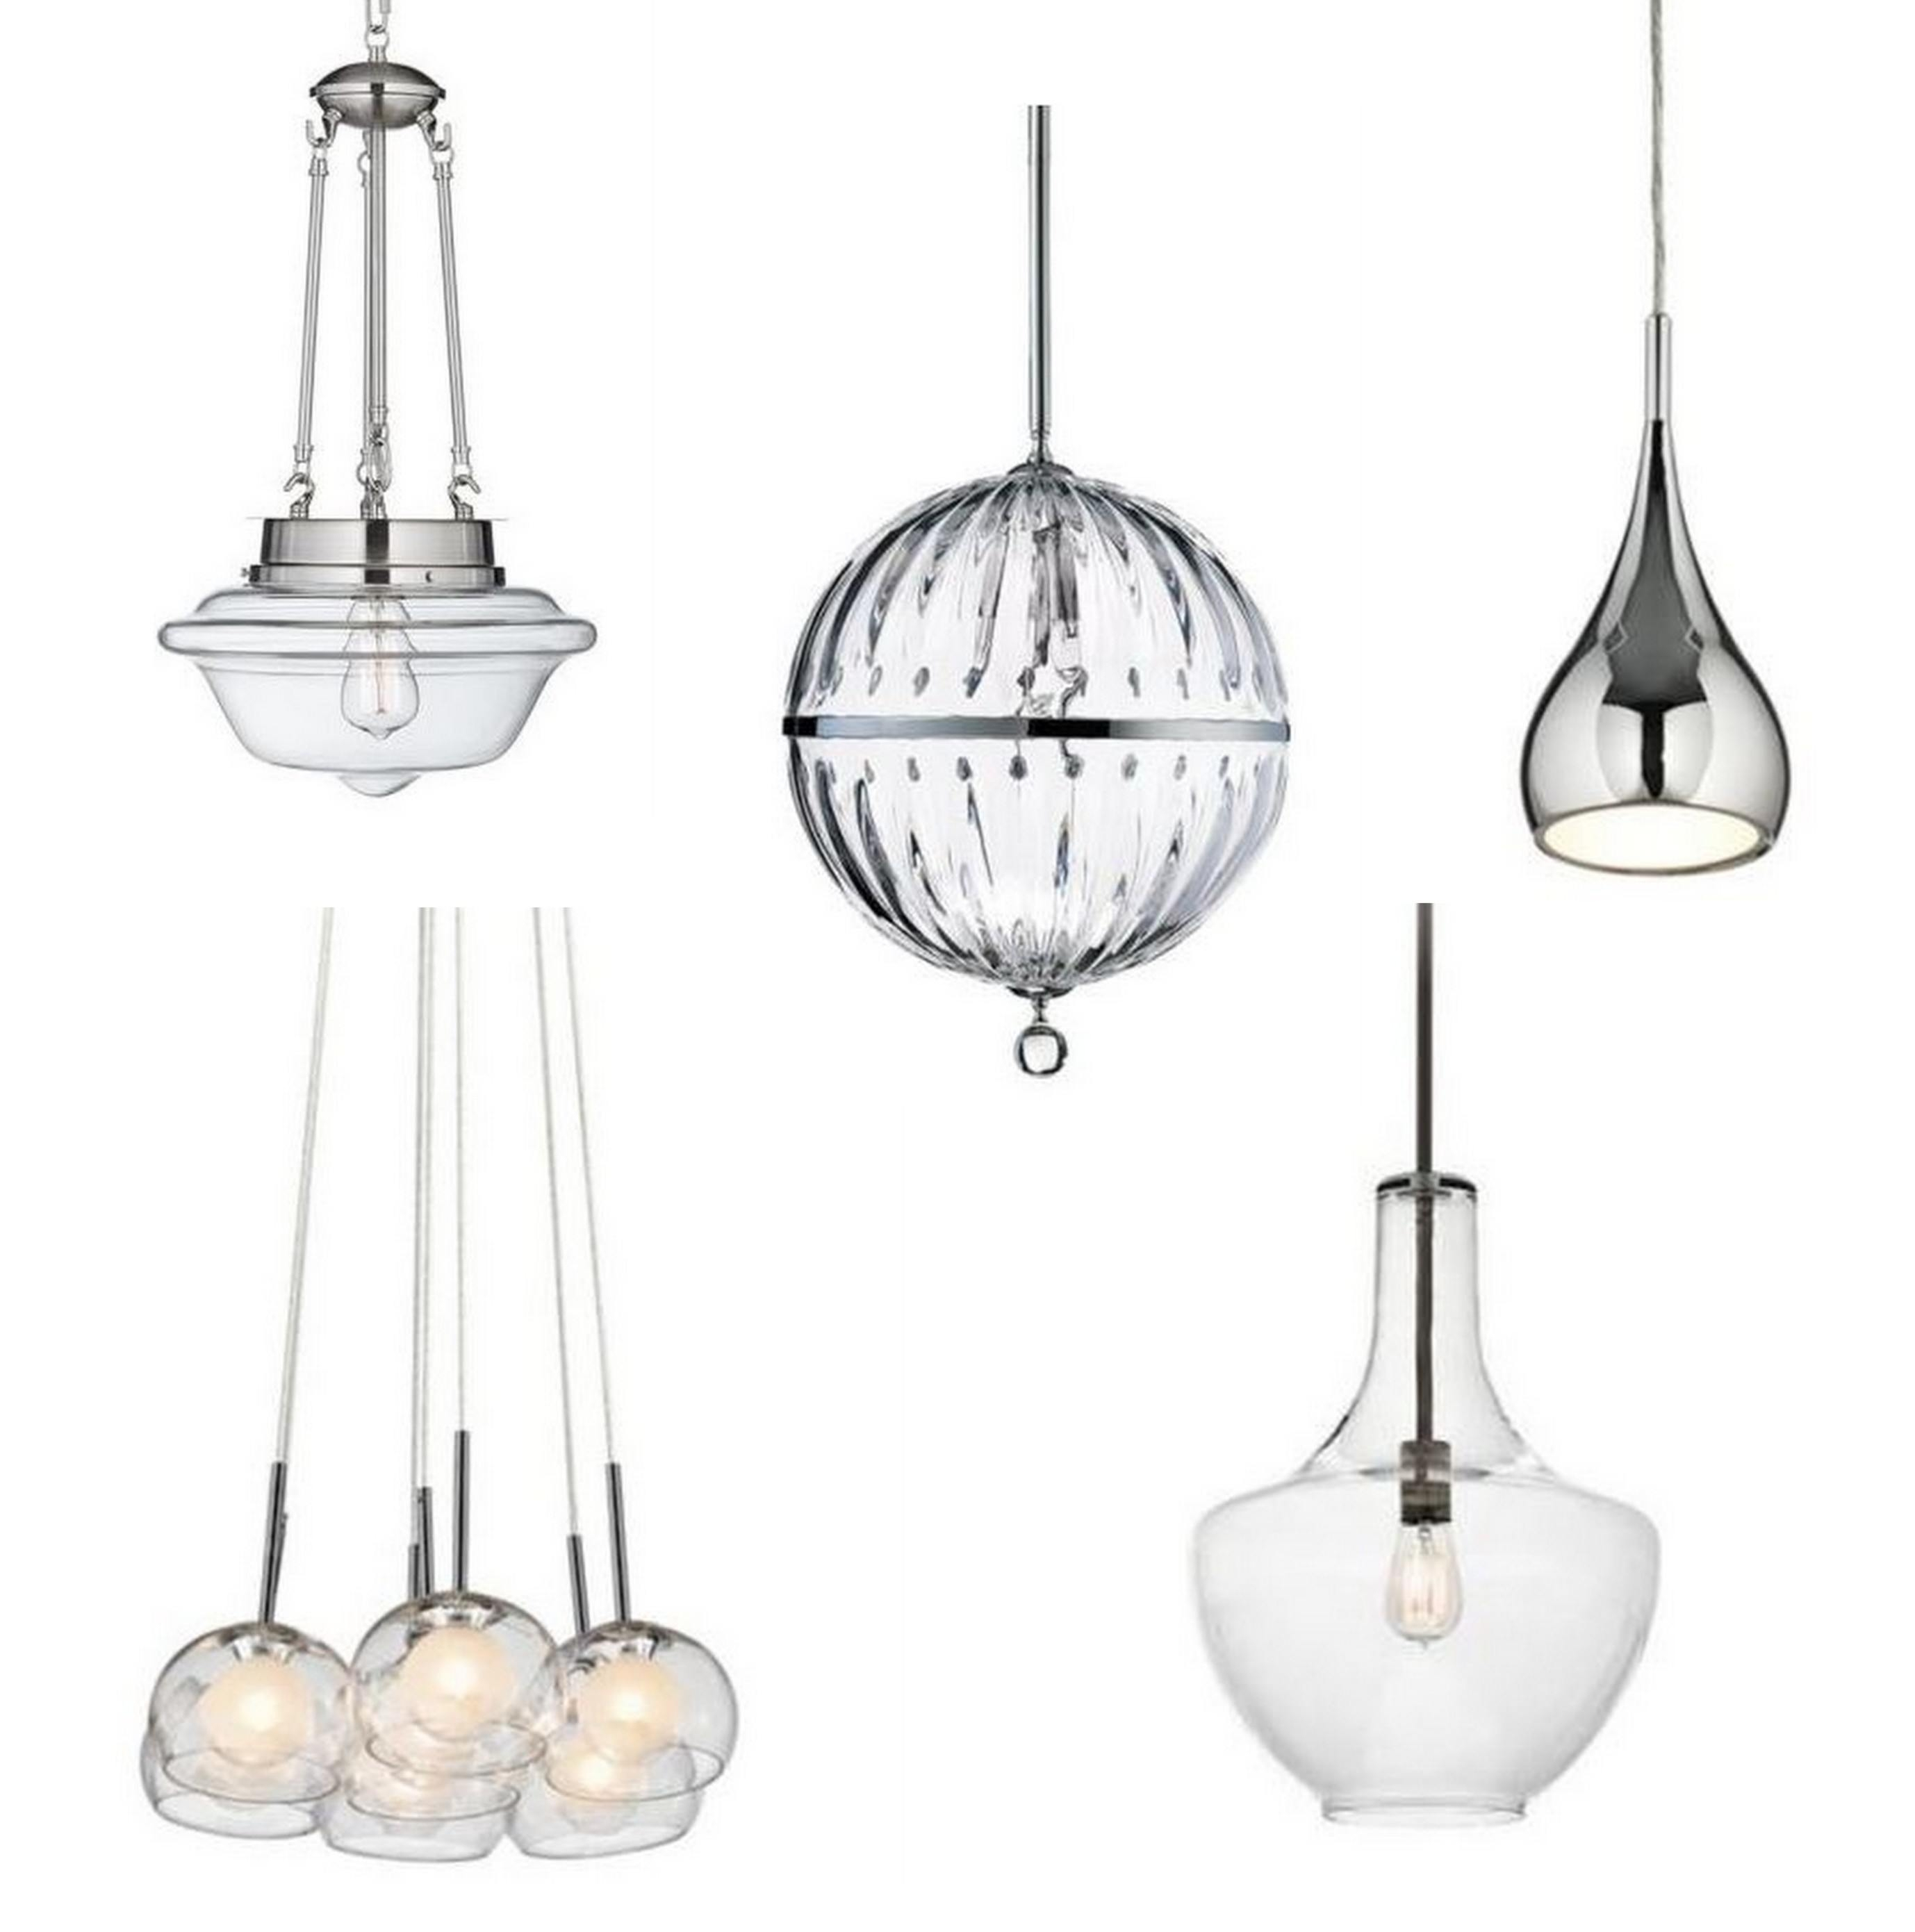 59 Great Astounding Amazing Cluster Glass Pendant Light Fixture On Intended For John Lewis Outdoor Ceiling Lights (#1 of 15)